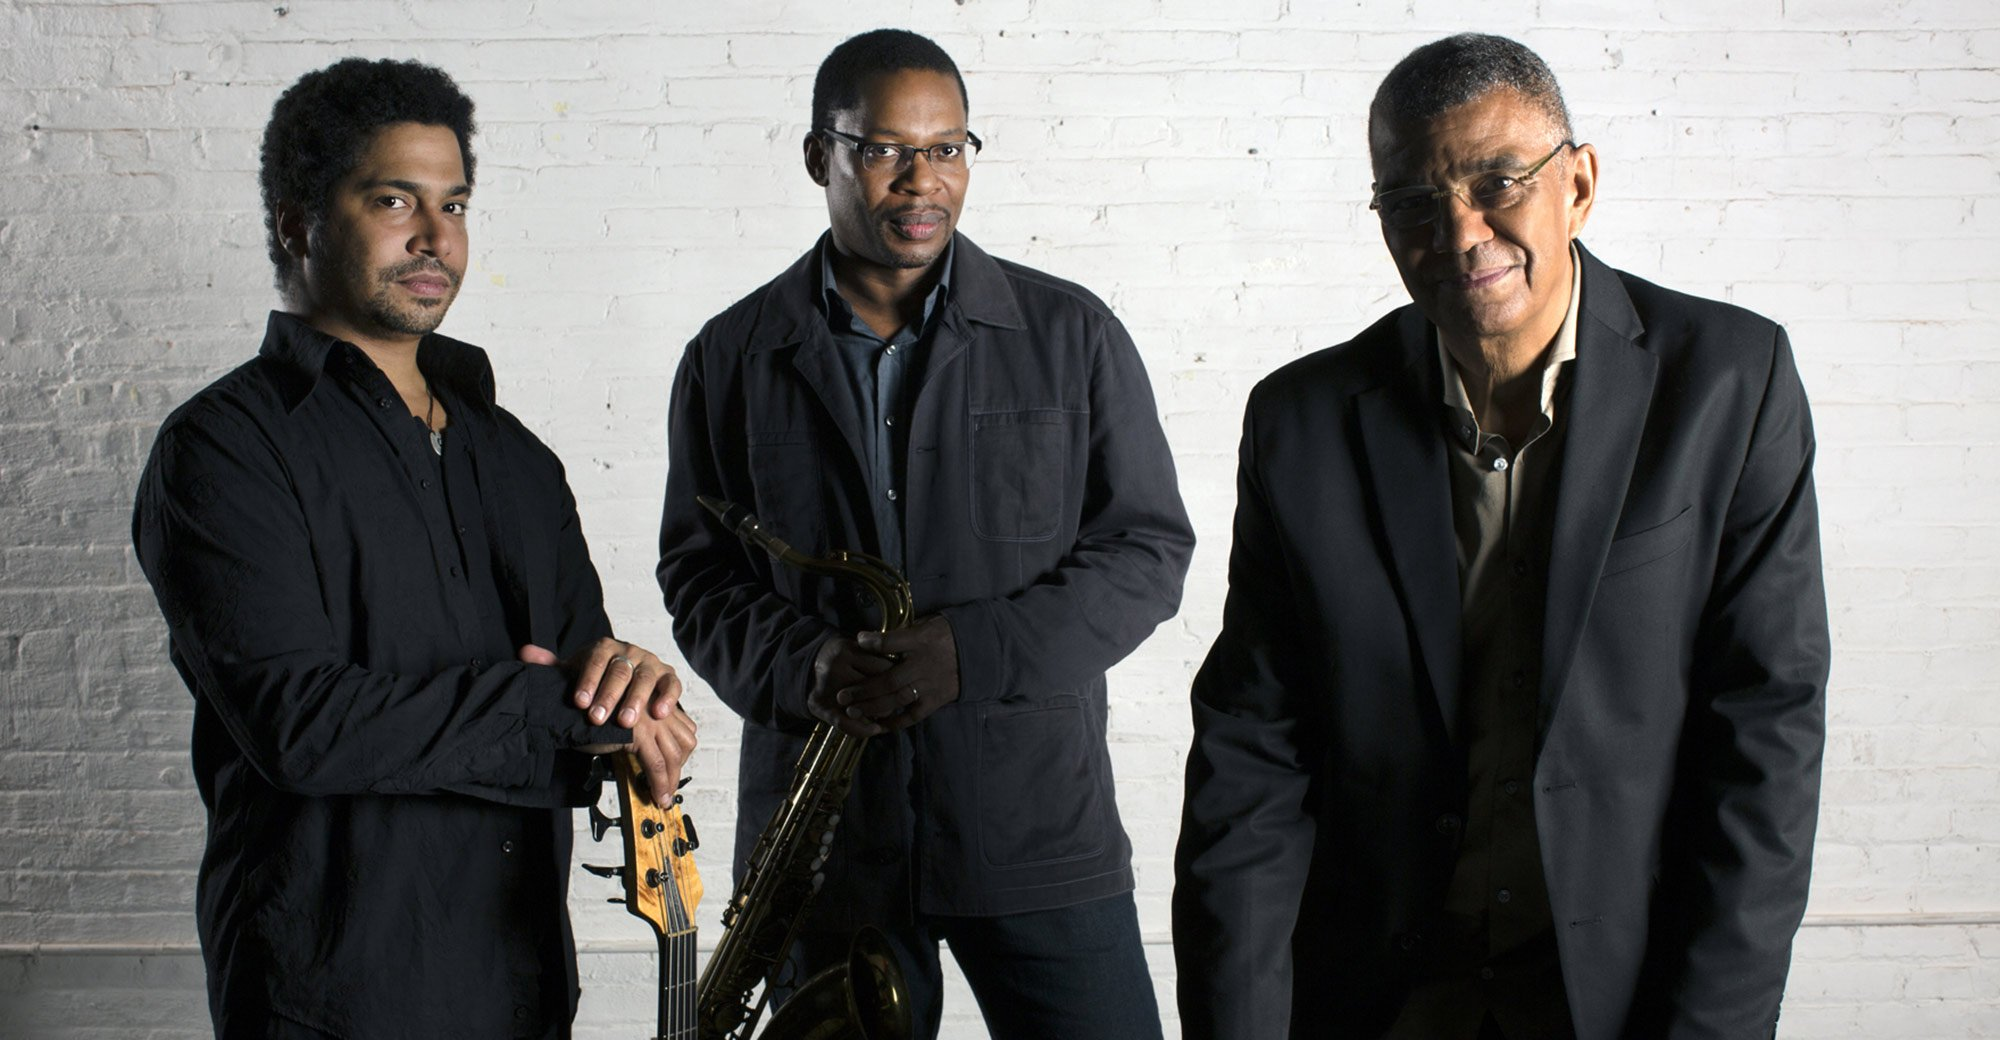 The Jack DeJohnette Trio takes the stage at New Mexico Jazz Festival